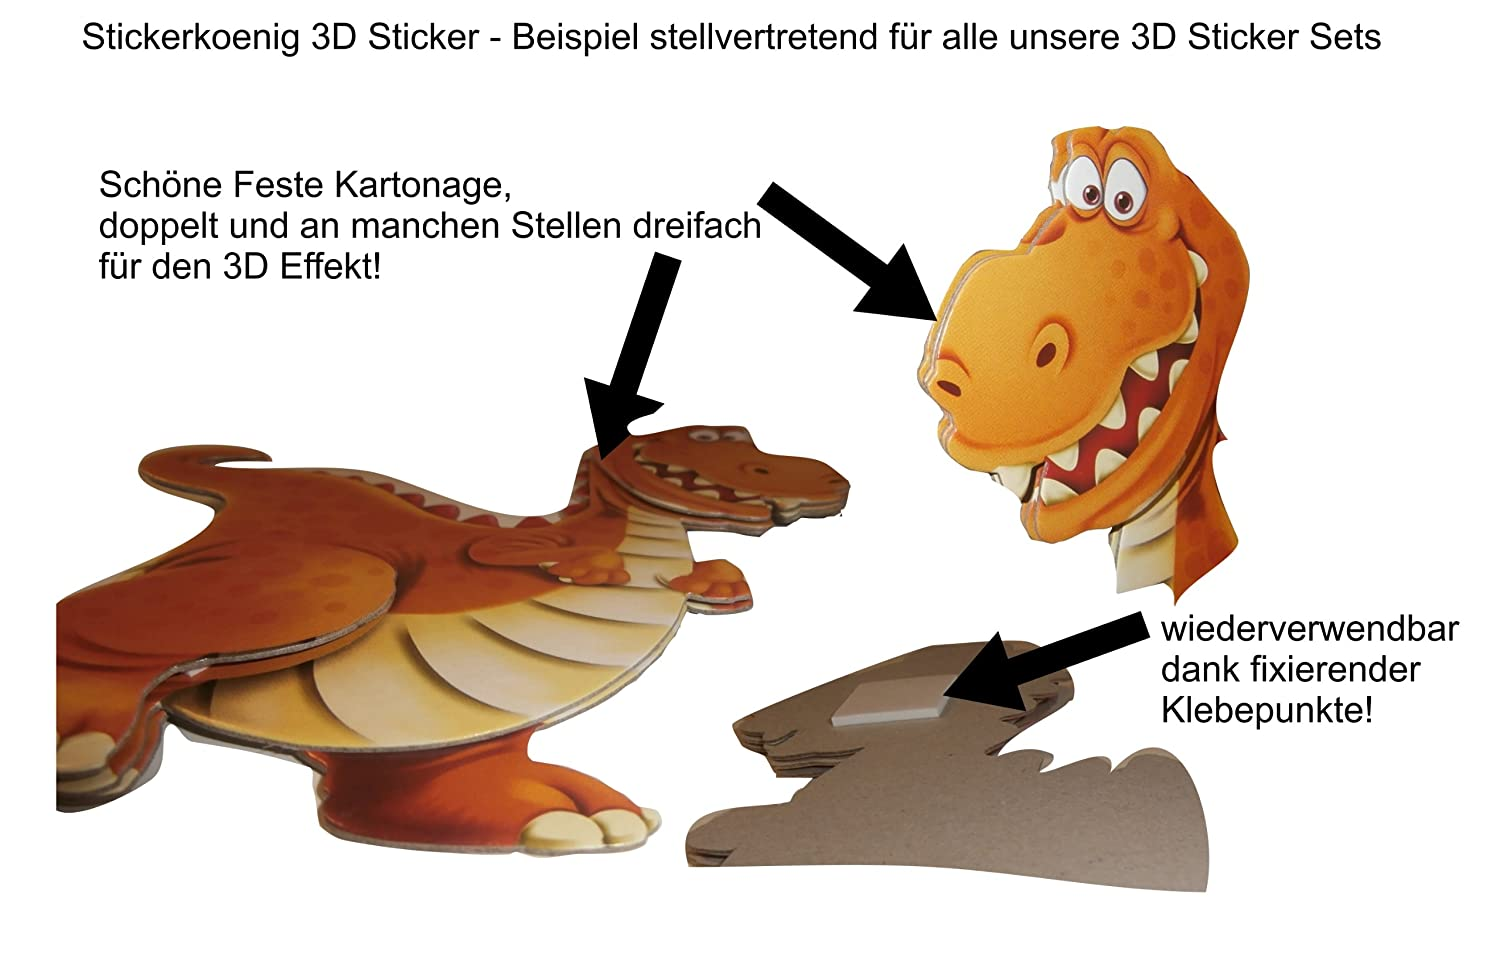 Amazon.de: Stickerkoenig Wandtattoo 3D Sticker Wandsticker ...